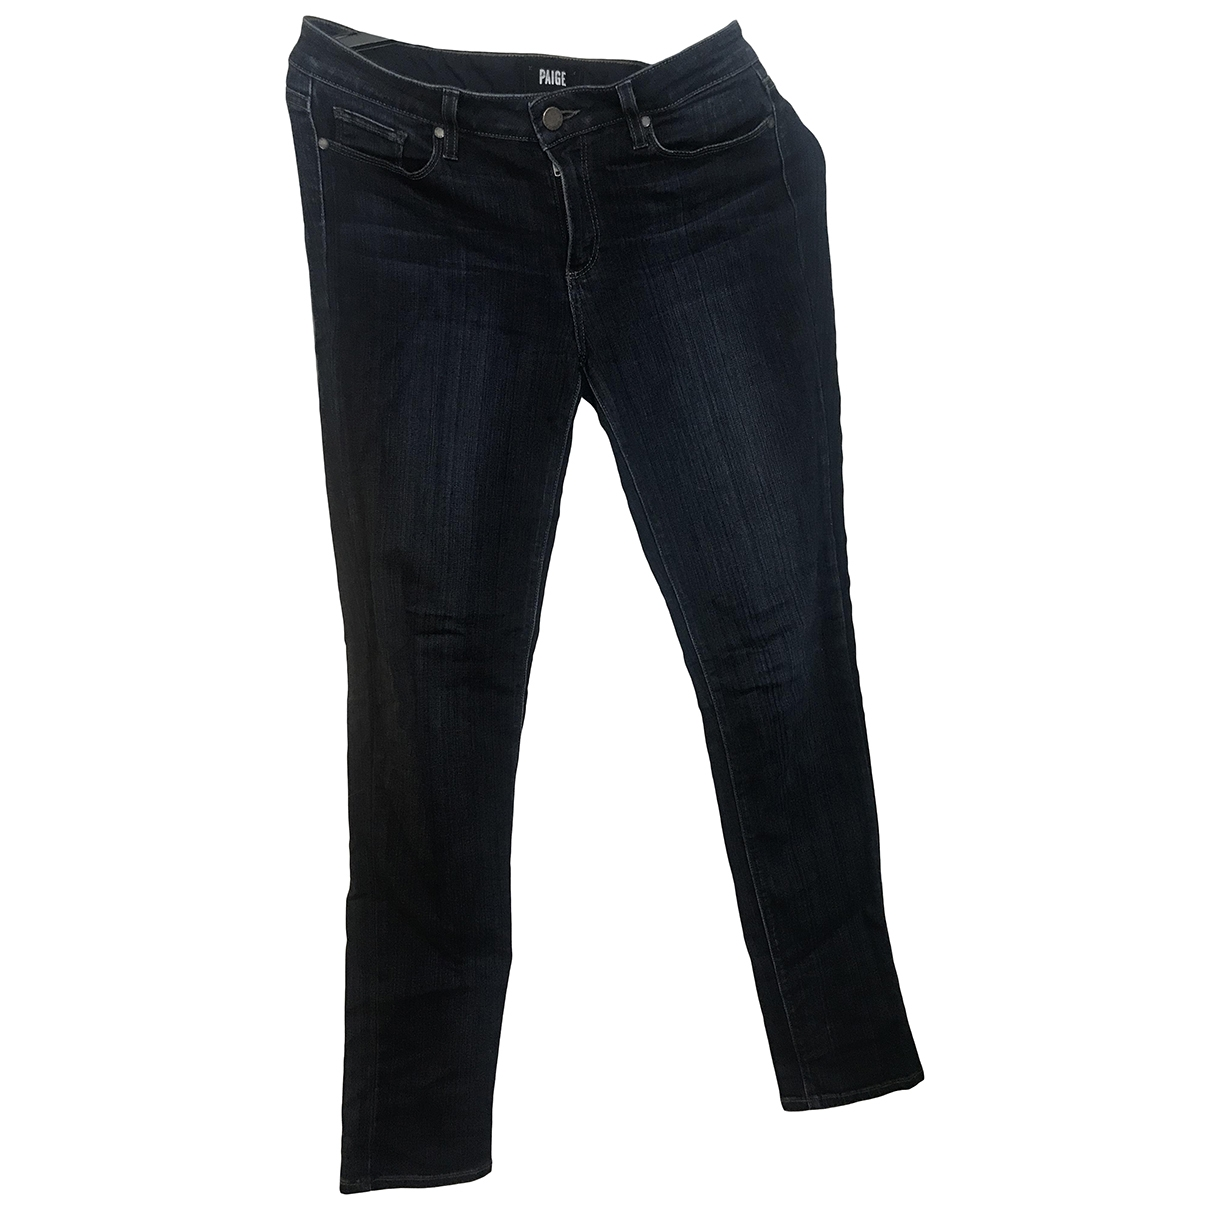 Paige Jeans \N Blue Cotton - elasthane Jeans for Women 30 US